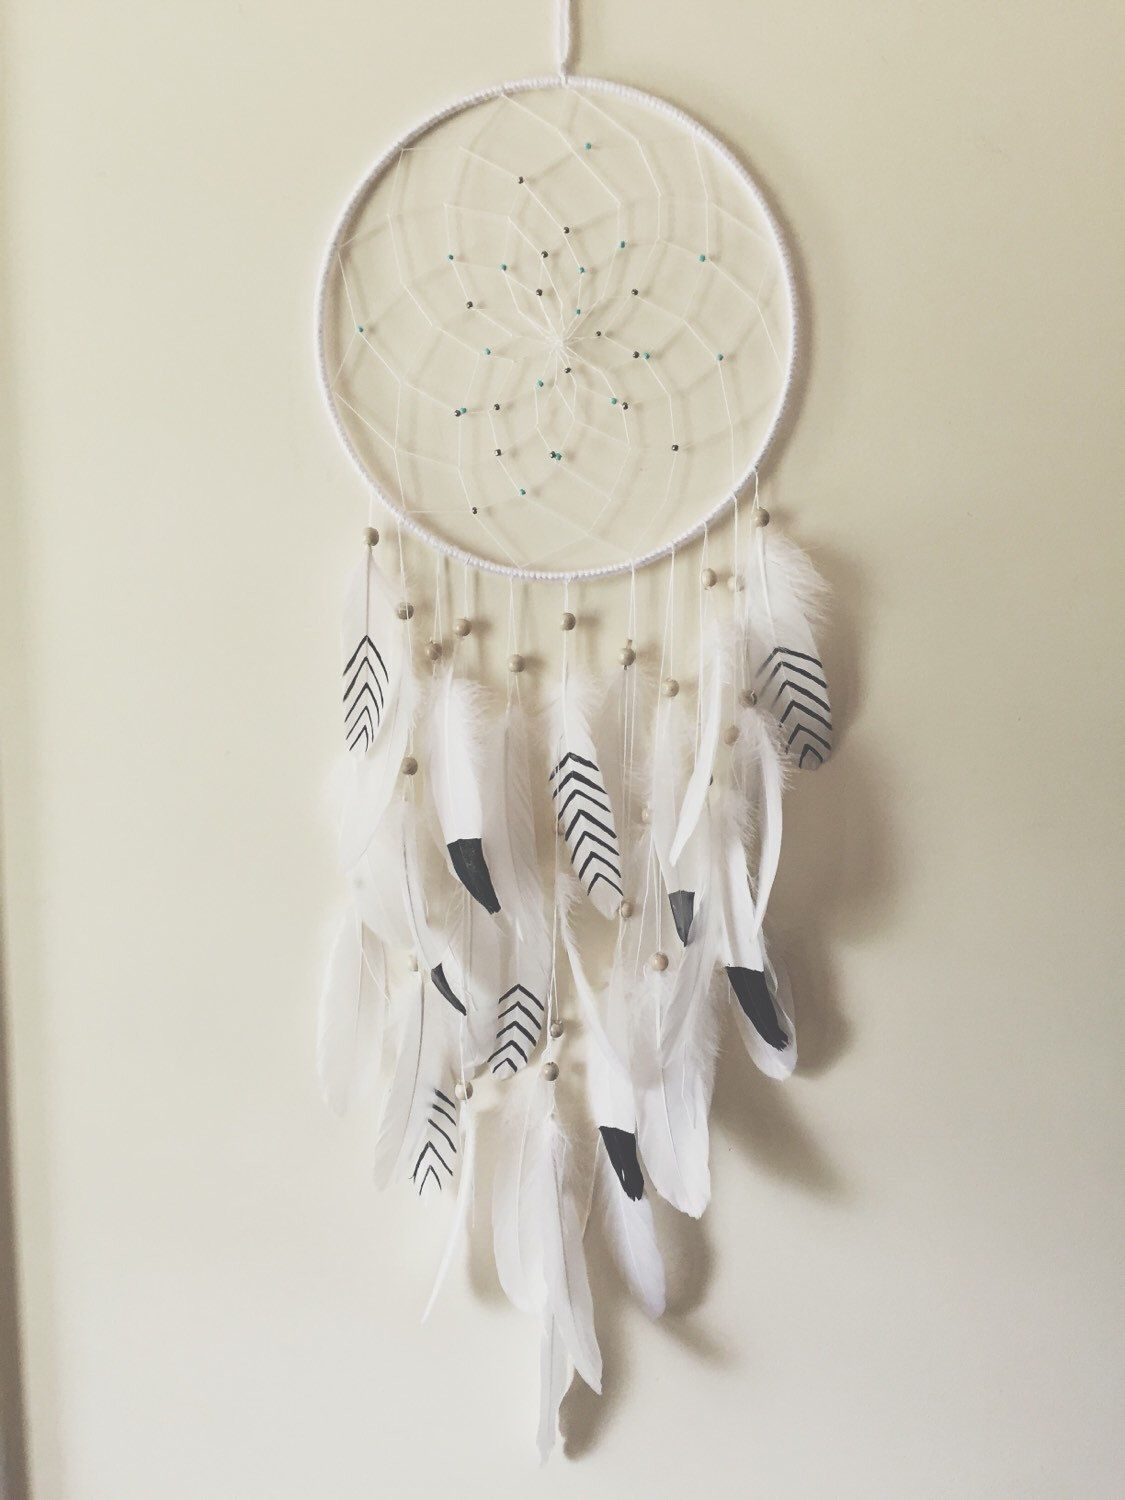 Black And White Dream Catcher Boho Chic Dreamcatcher By Kariwidener On Etsy Https